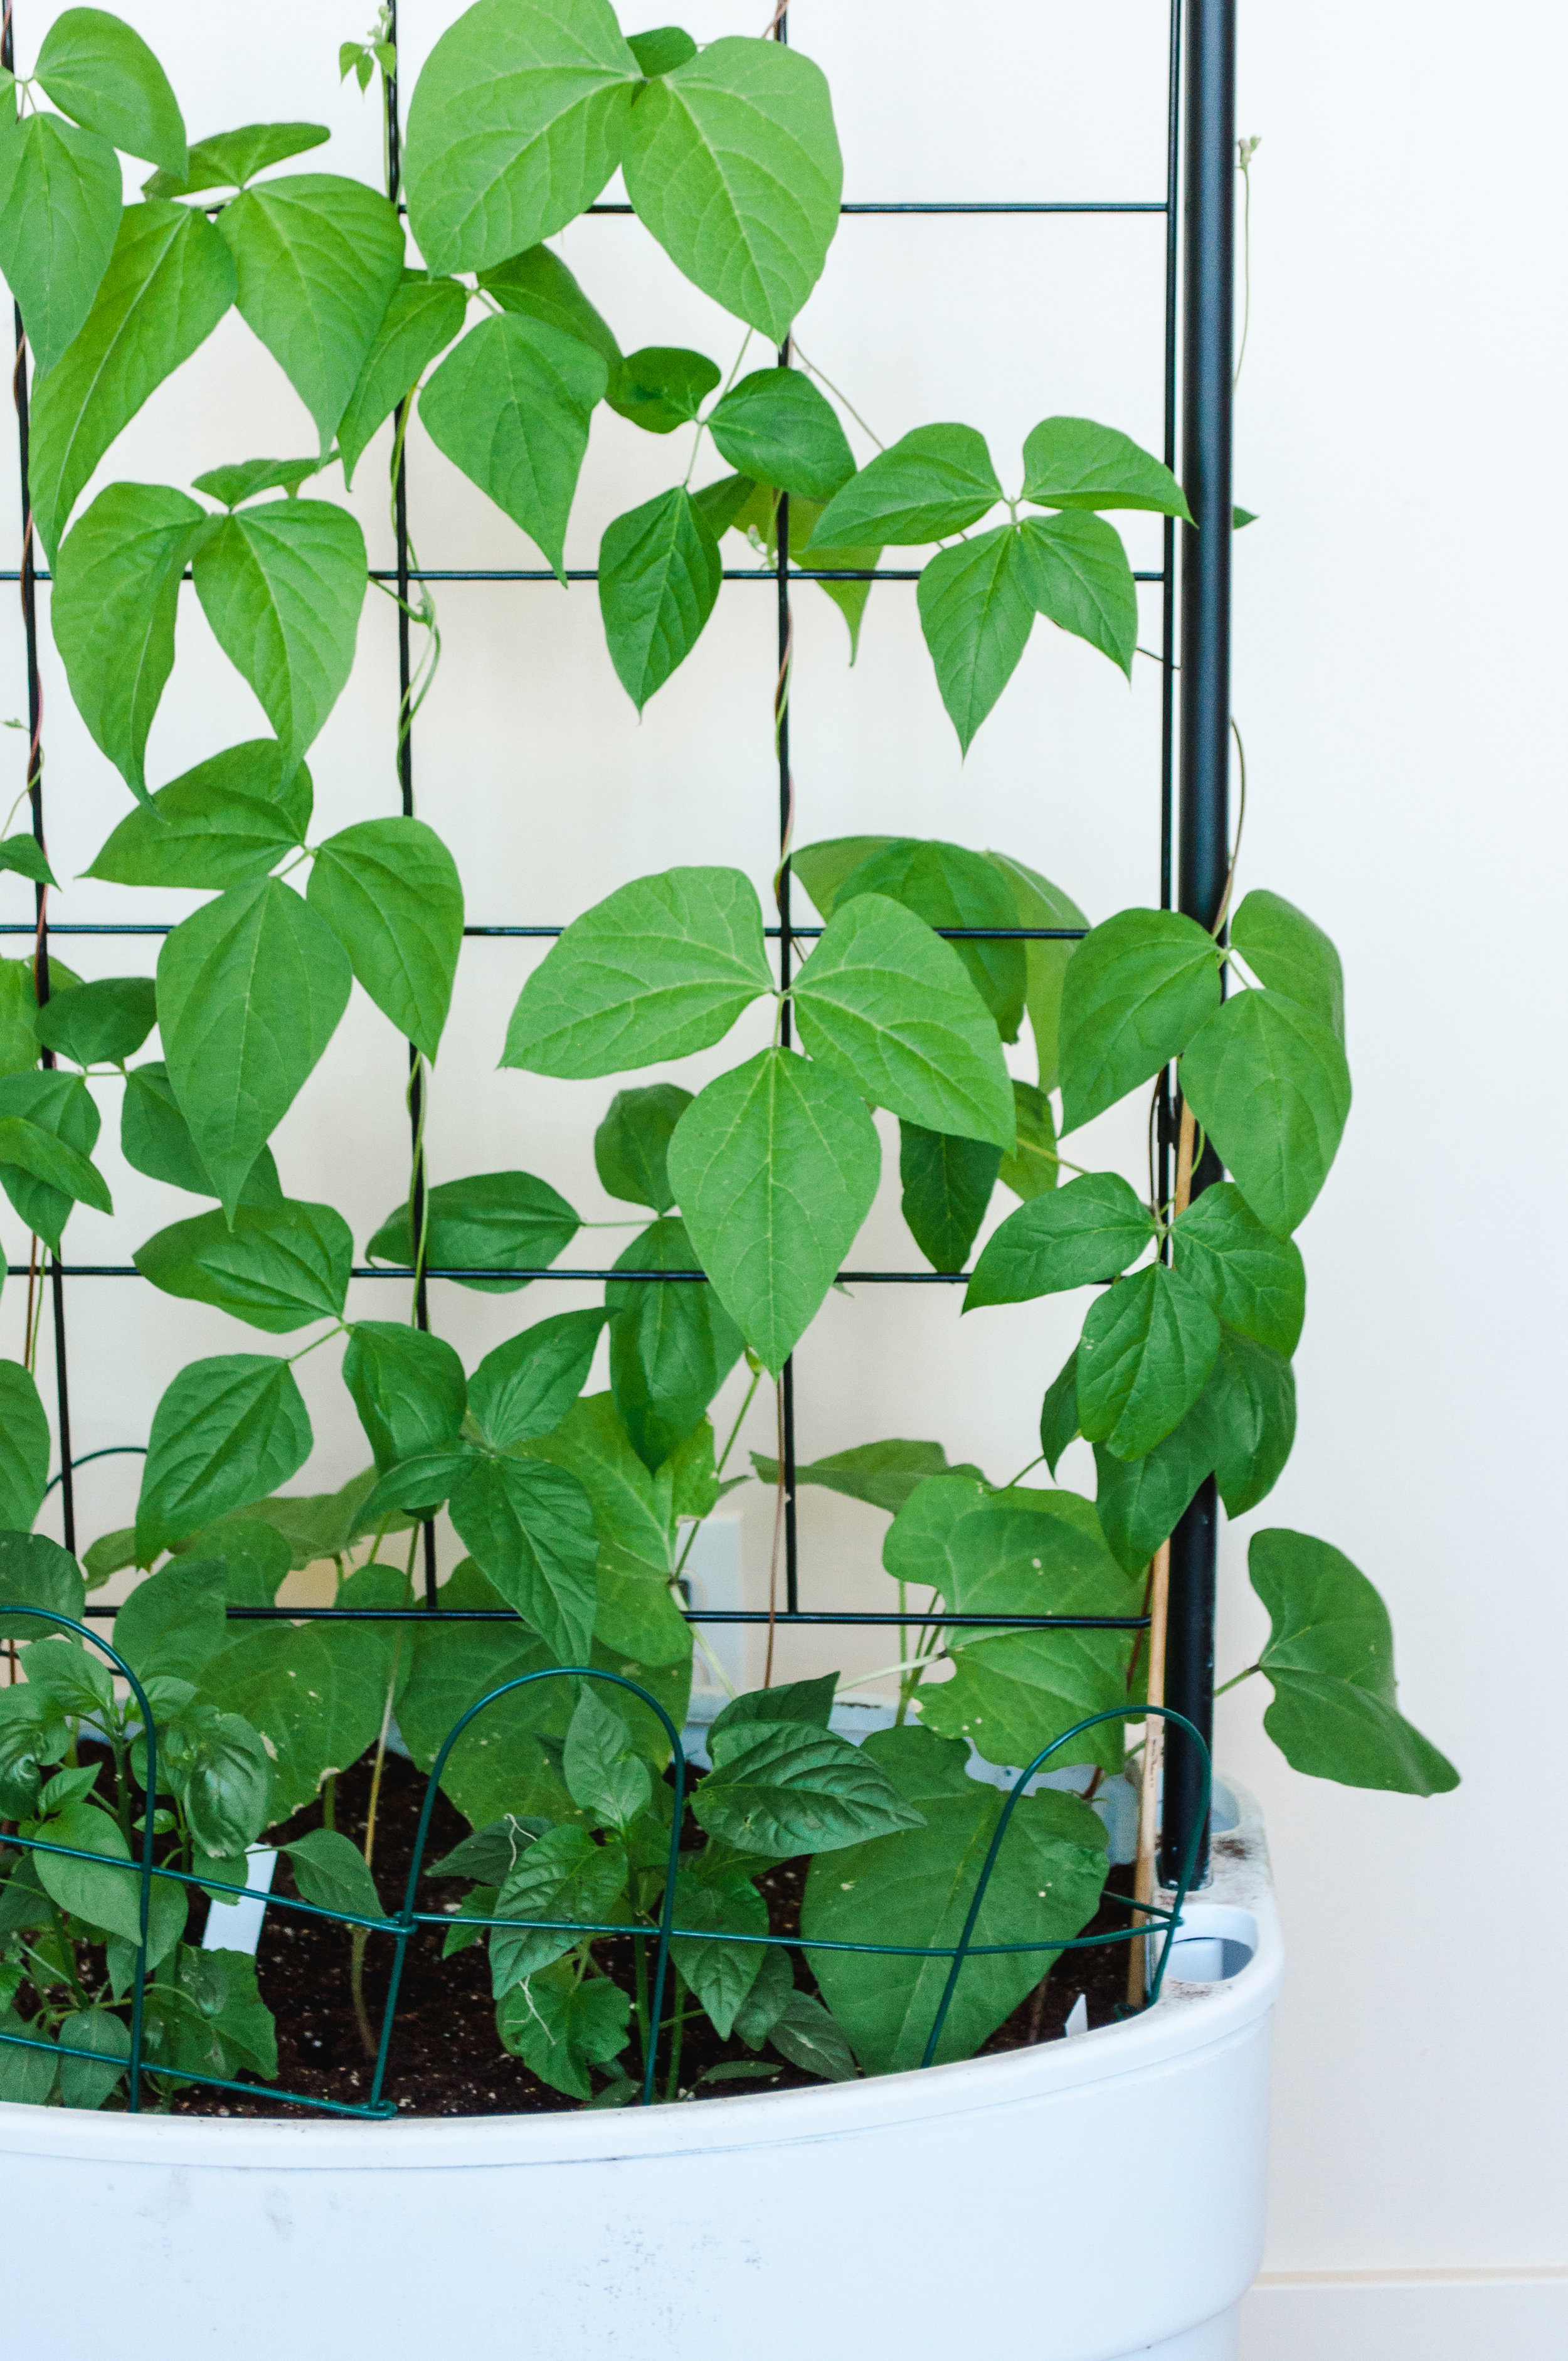 Beans and Peppers on Trellis